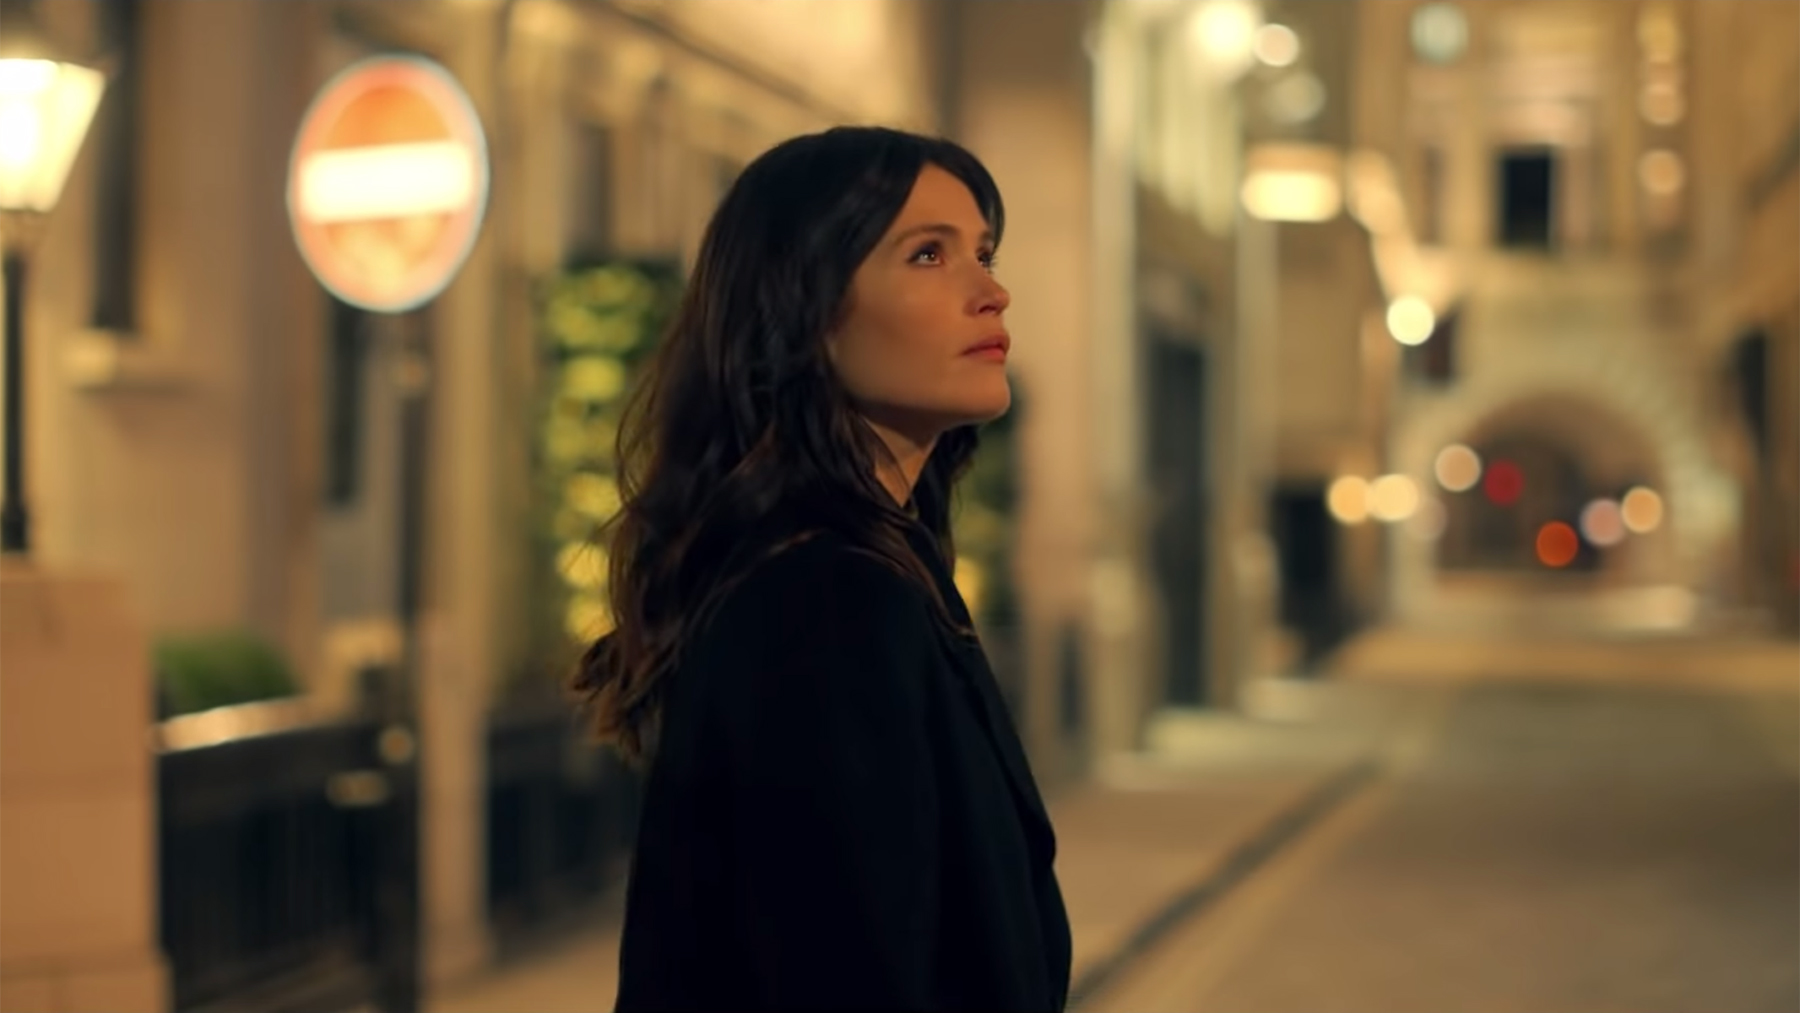 Jessie Ware Captures the Lonely Streets of London in 'Remember Where You Are' Video